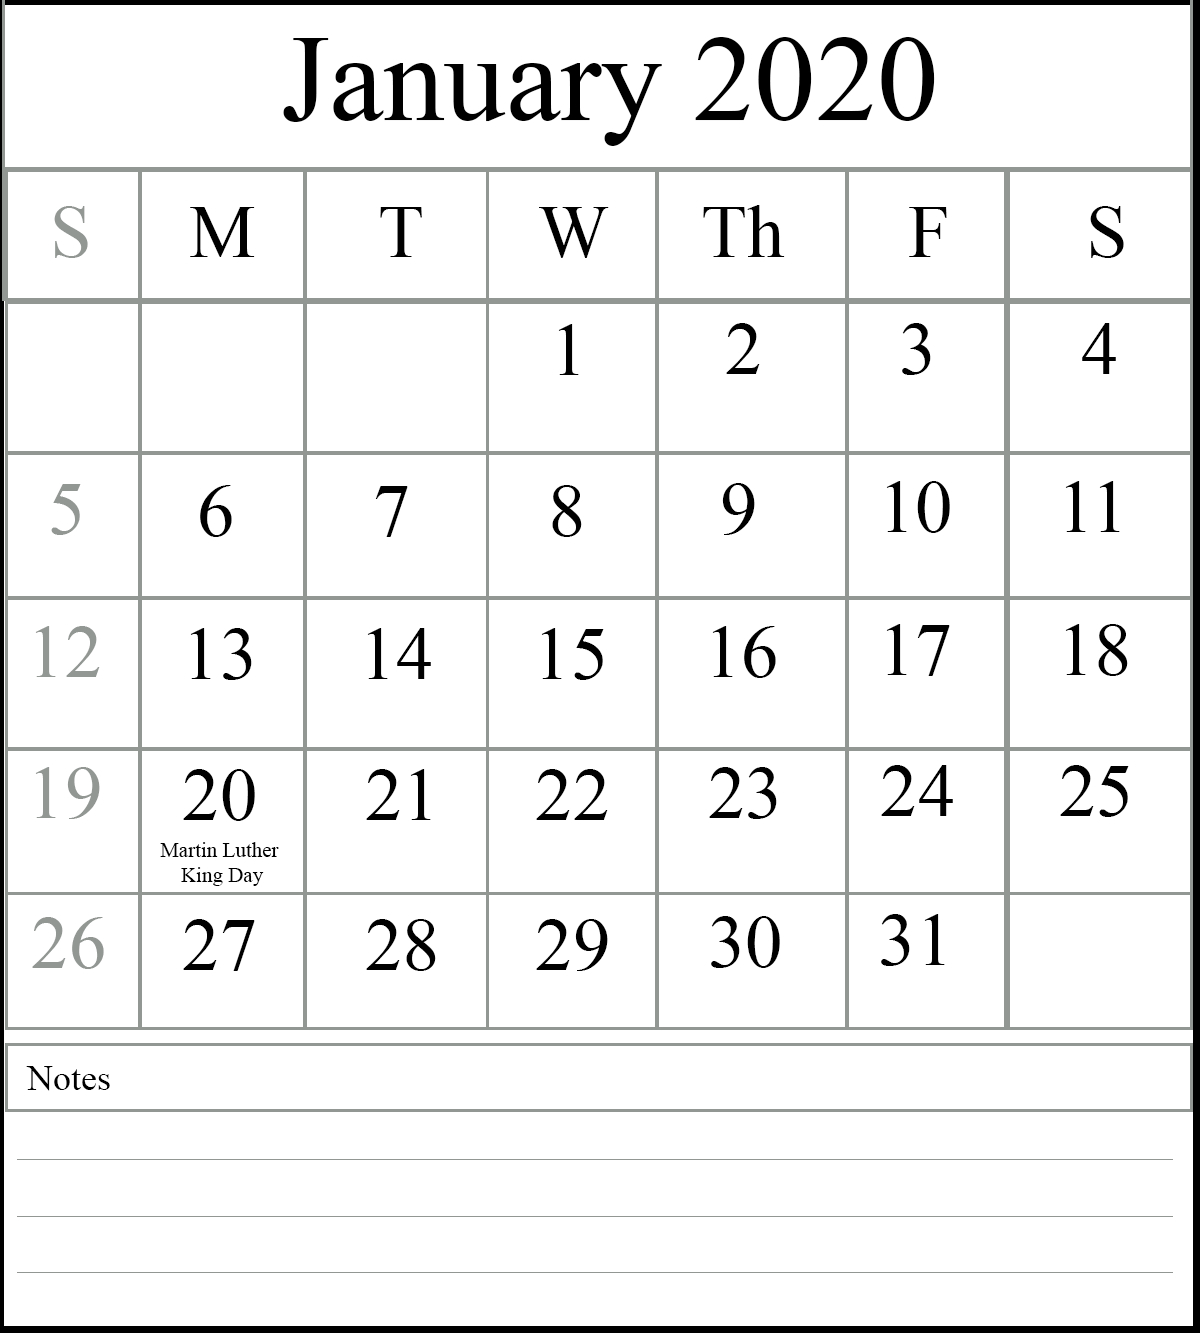 January 2020 Calendar Excel – Free Monthly Calendar in January 2020 Waterproof Calendar